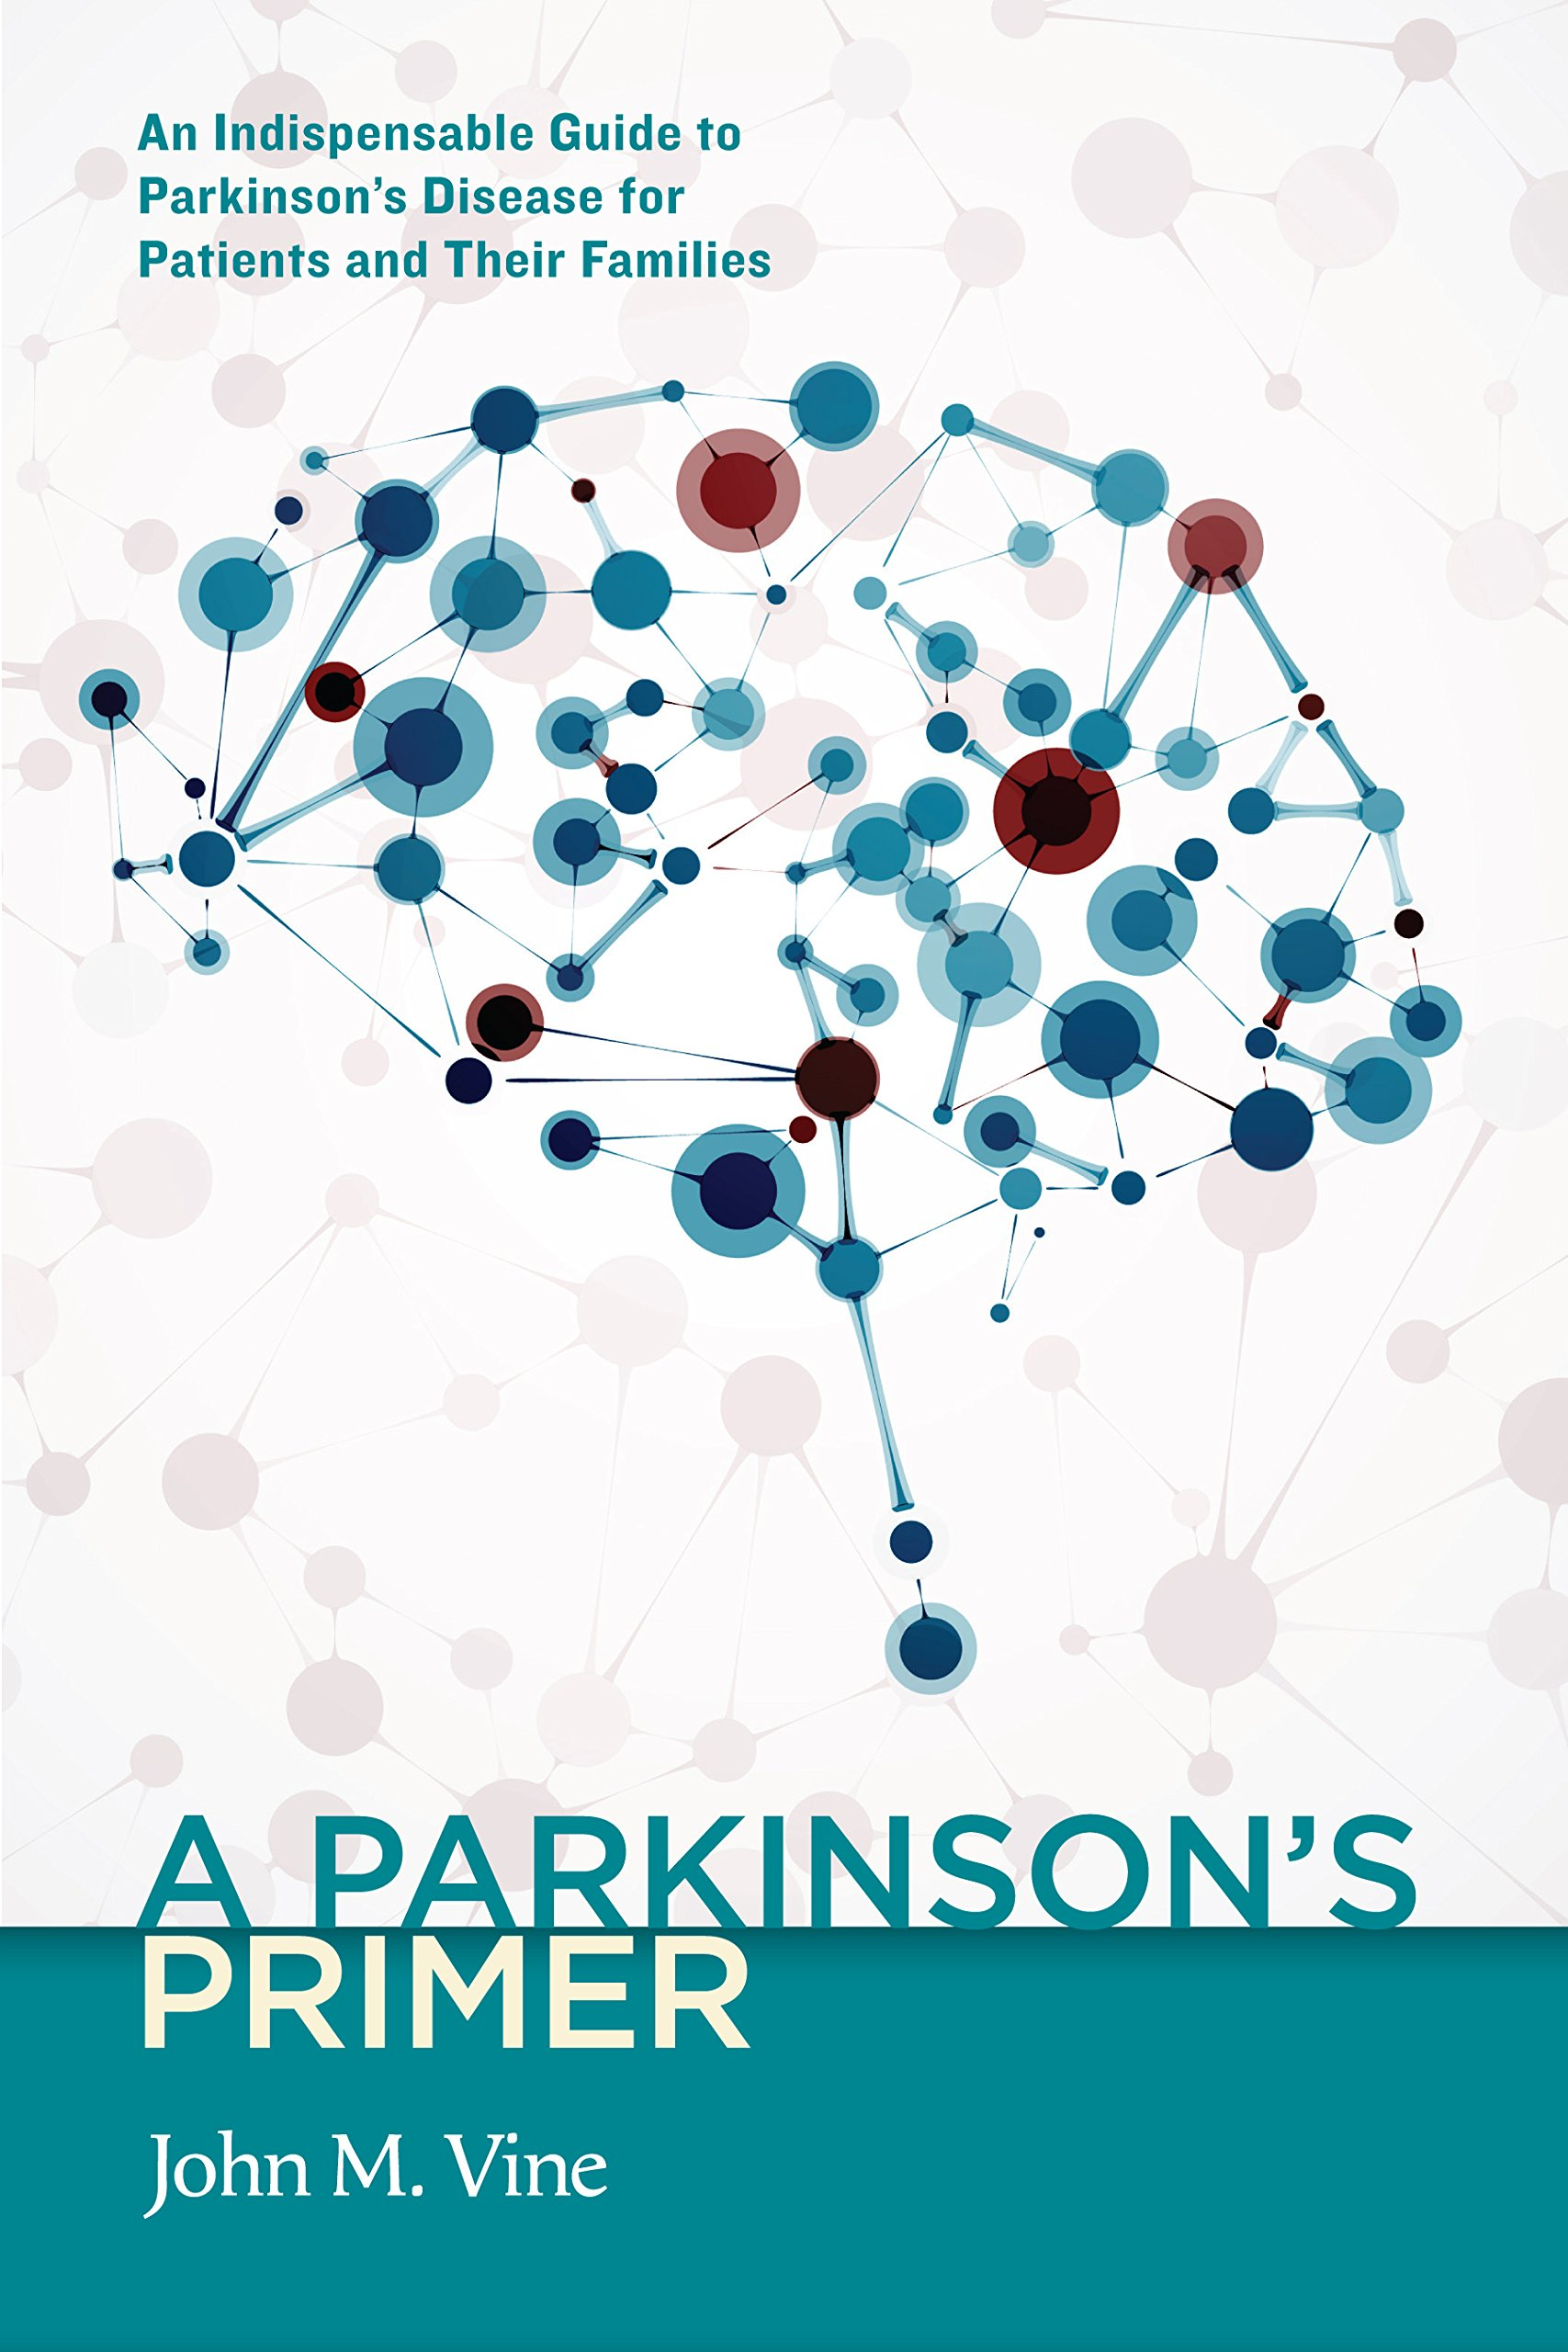 A Parkinson's Primer: An Indispensable Guide to Parkinson's Disease for  Patients and Their Families: John M. Vine: 9781589881198: Amazon.com: Books